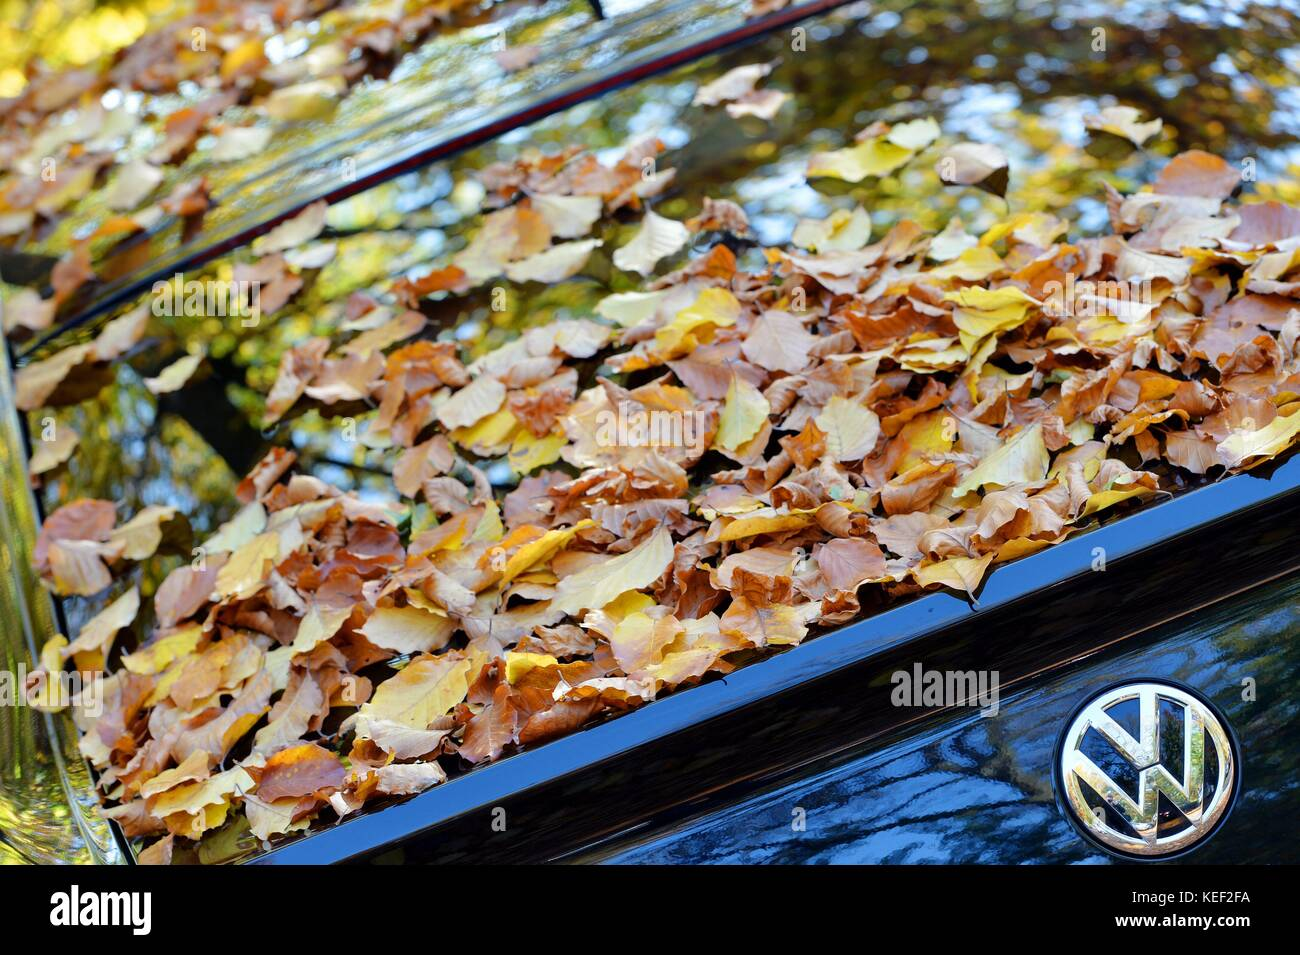 Appeal Social Stock Photos & Appeal Social Stock Images - Alamy